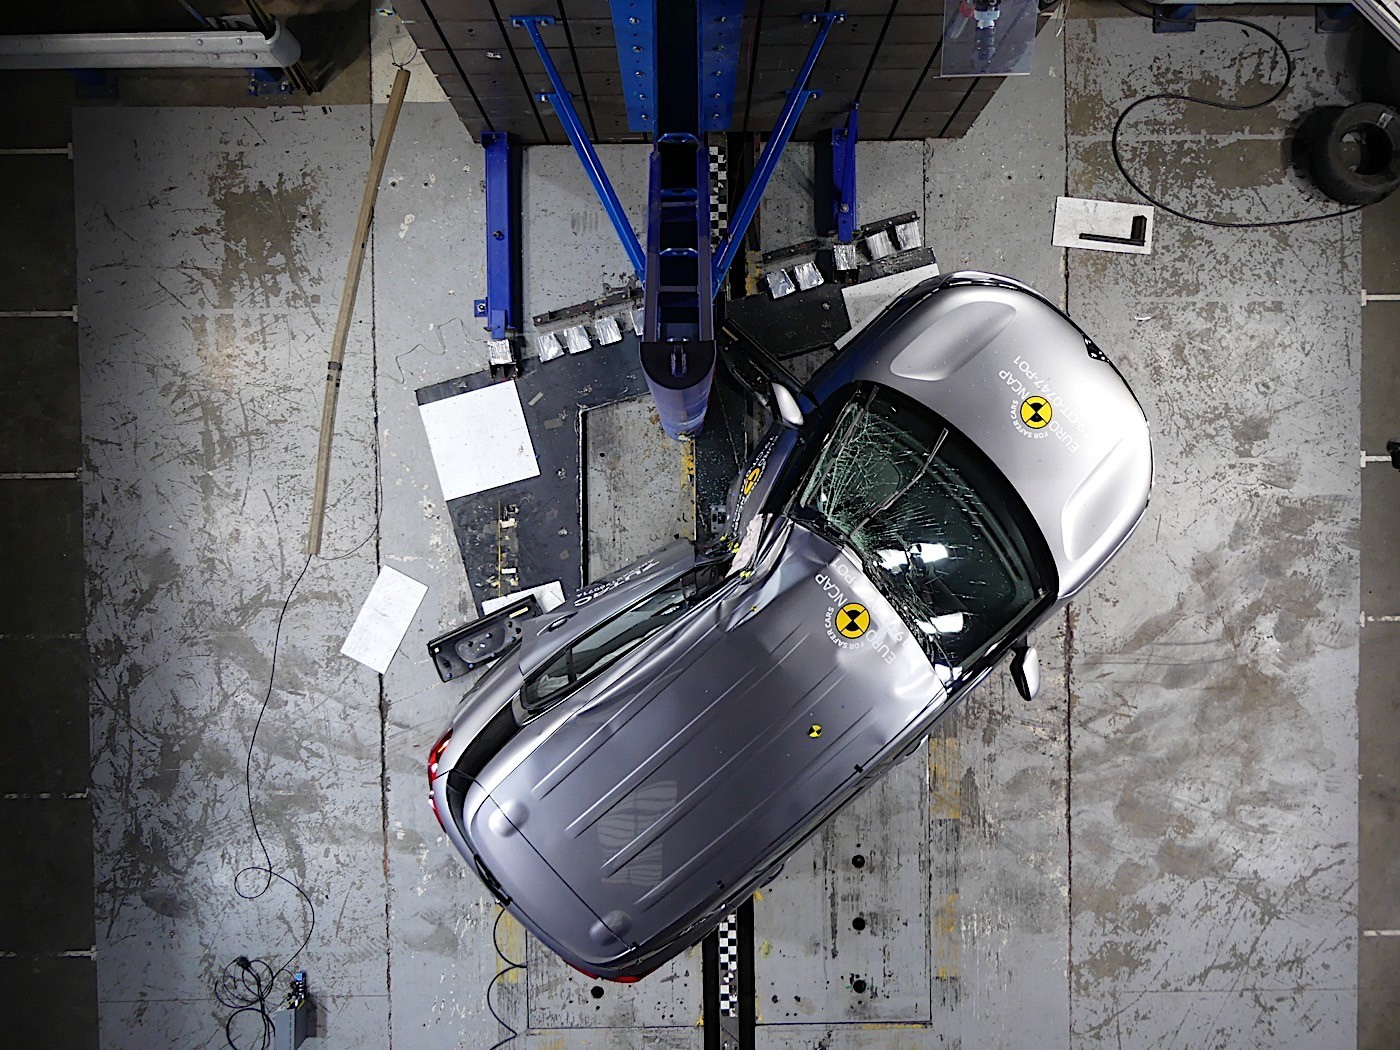 New Euro Ncap Crash Tests